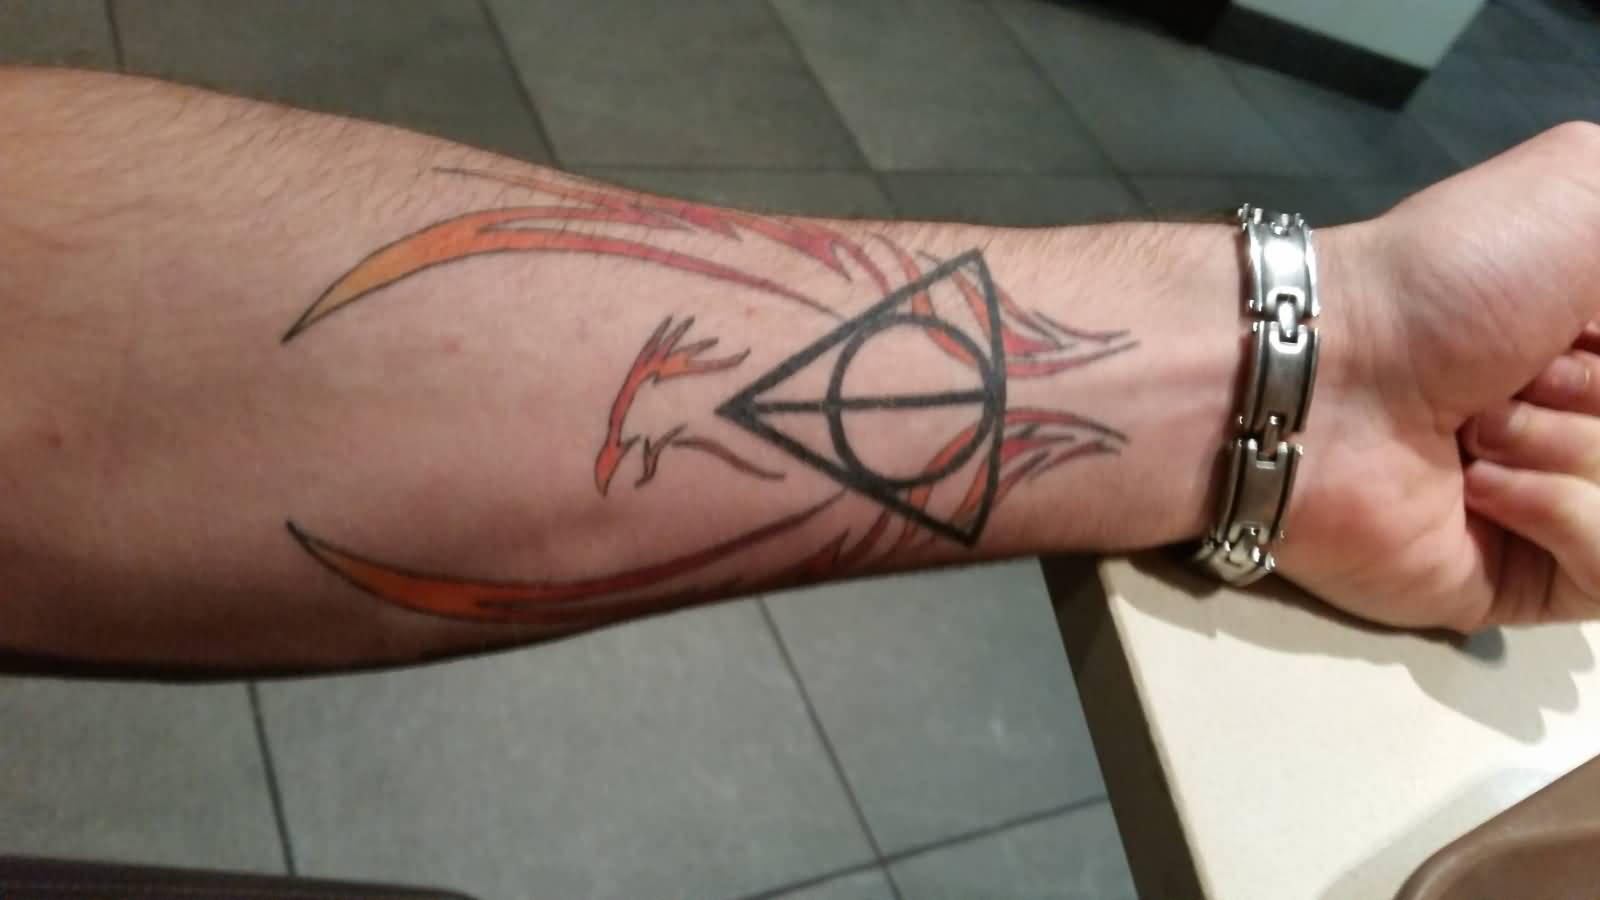 Nice Wings Amazing Hallows Tattoo On forearm